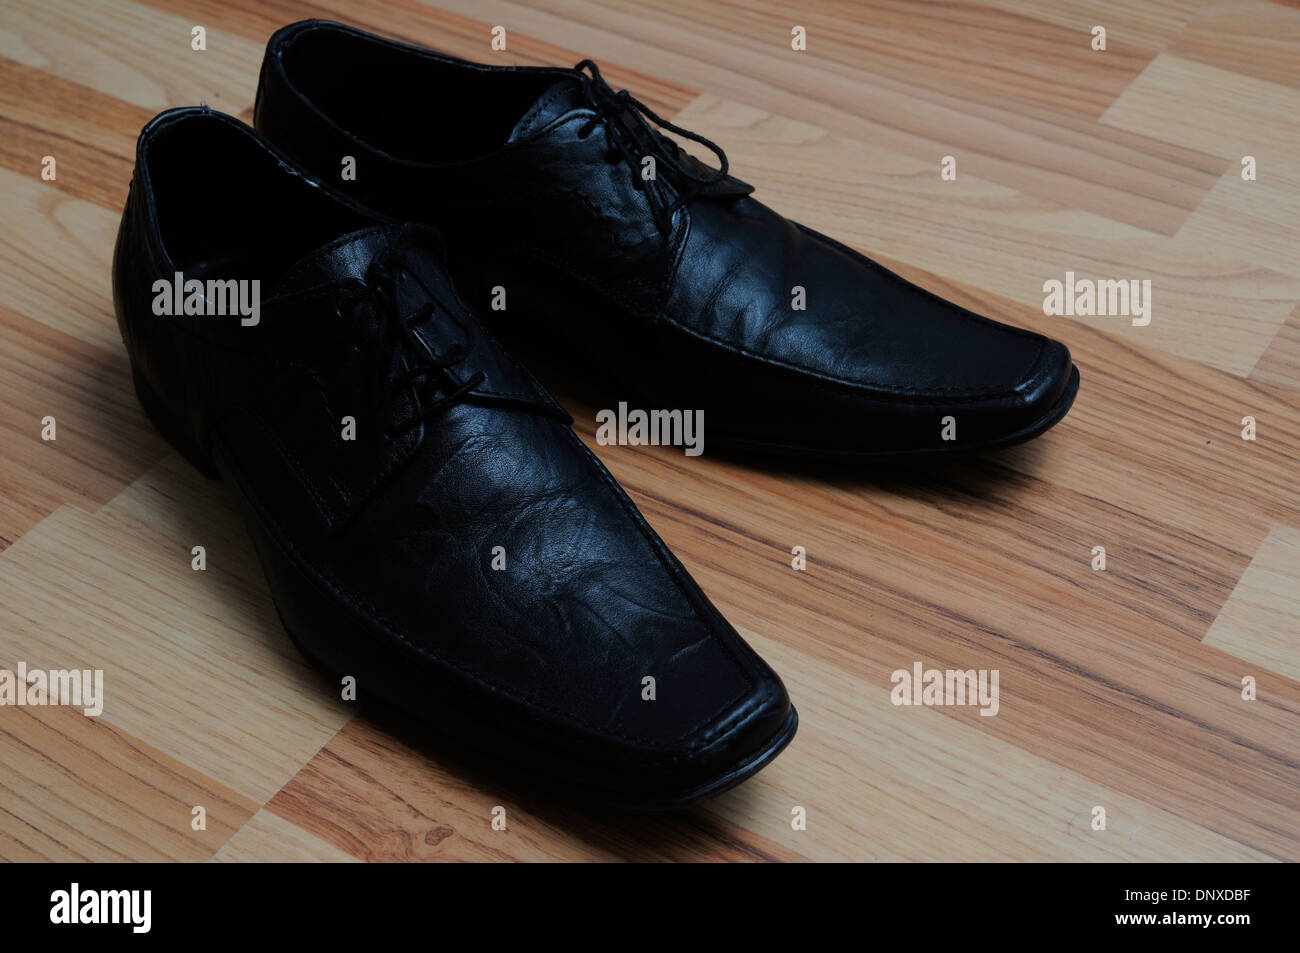 Black dress shoes on the floor. - Stock Image